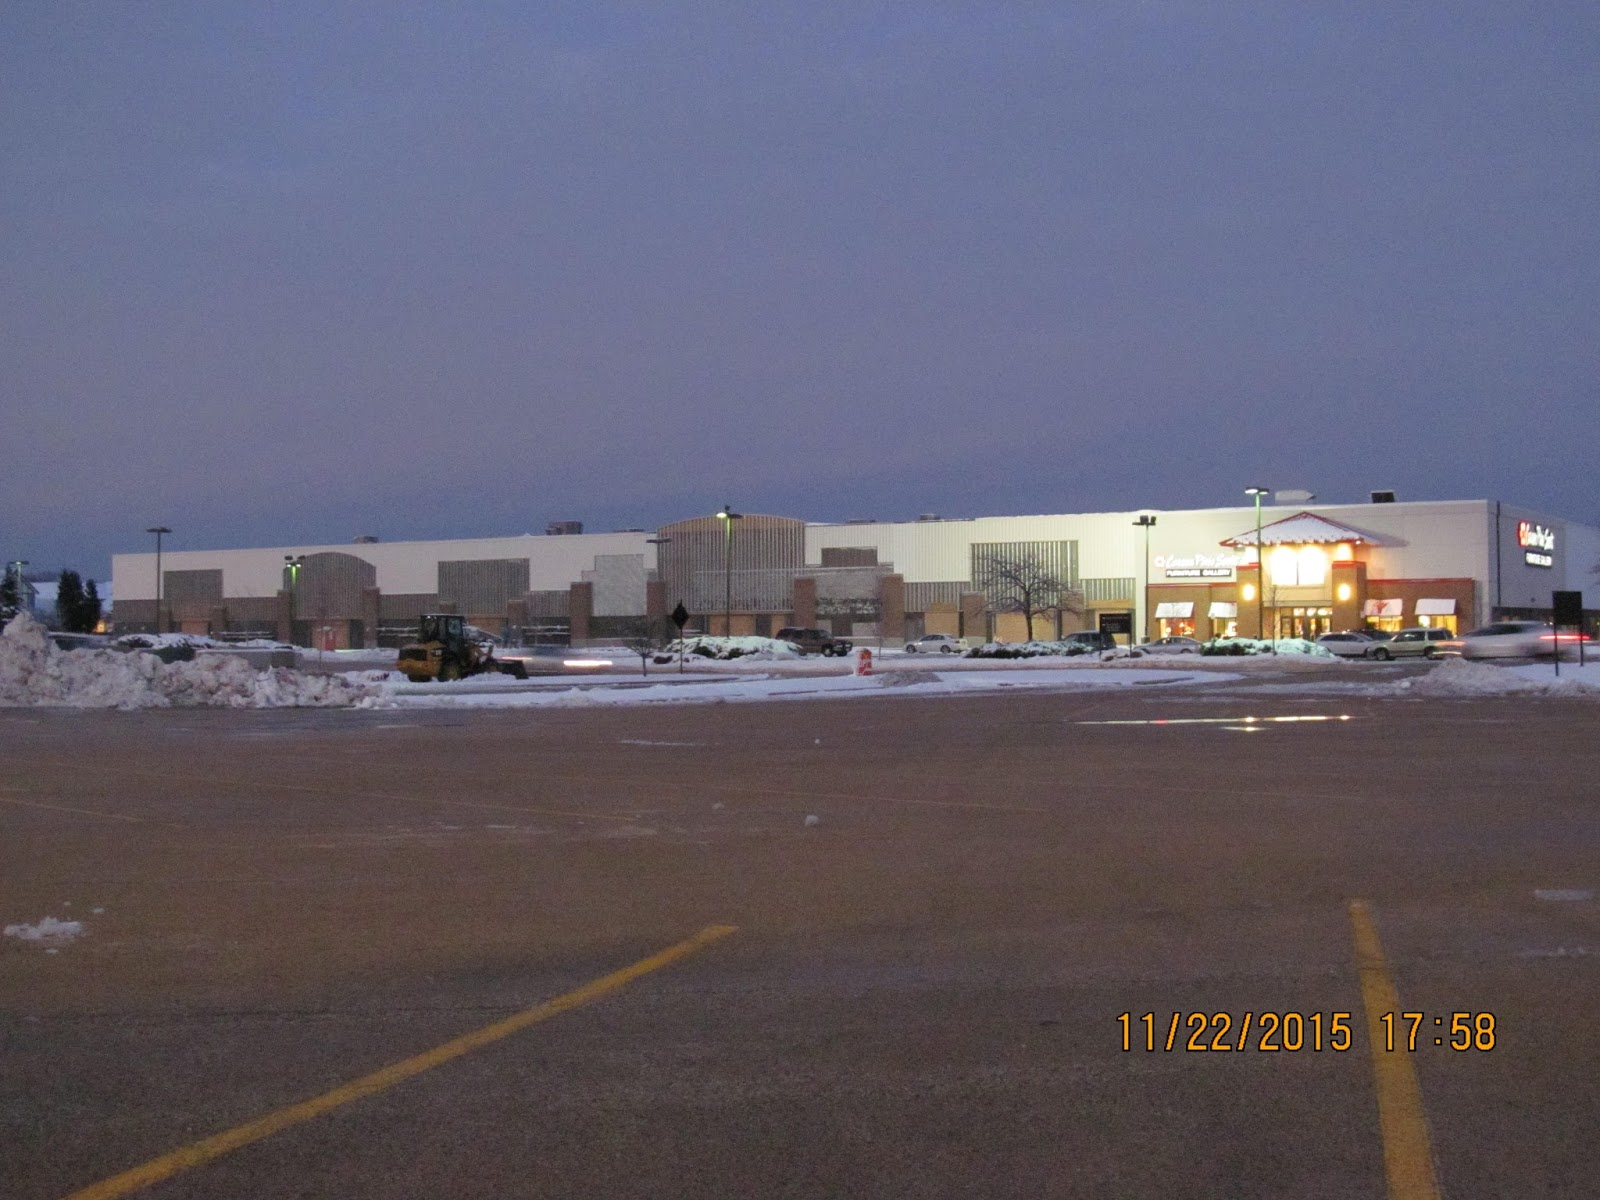 Trip to the mall new stores coming to orland park for Homemakers furniture locations illinois